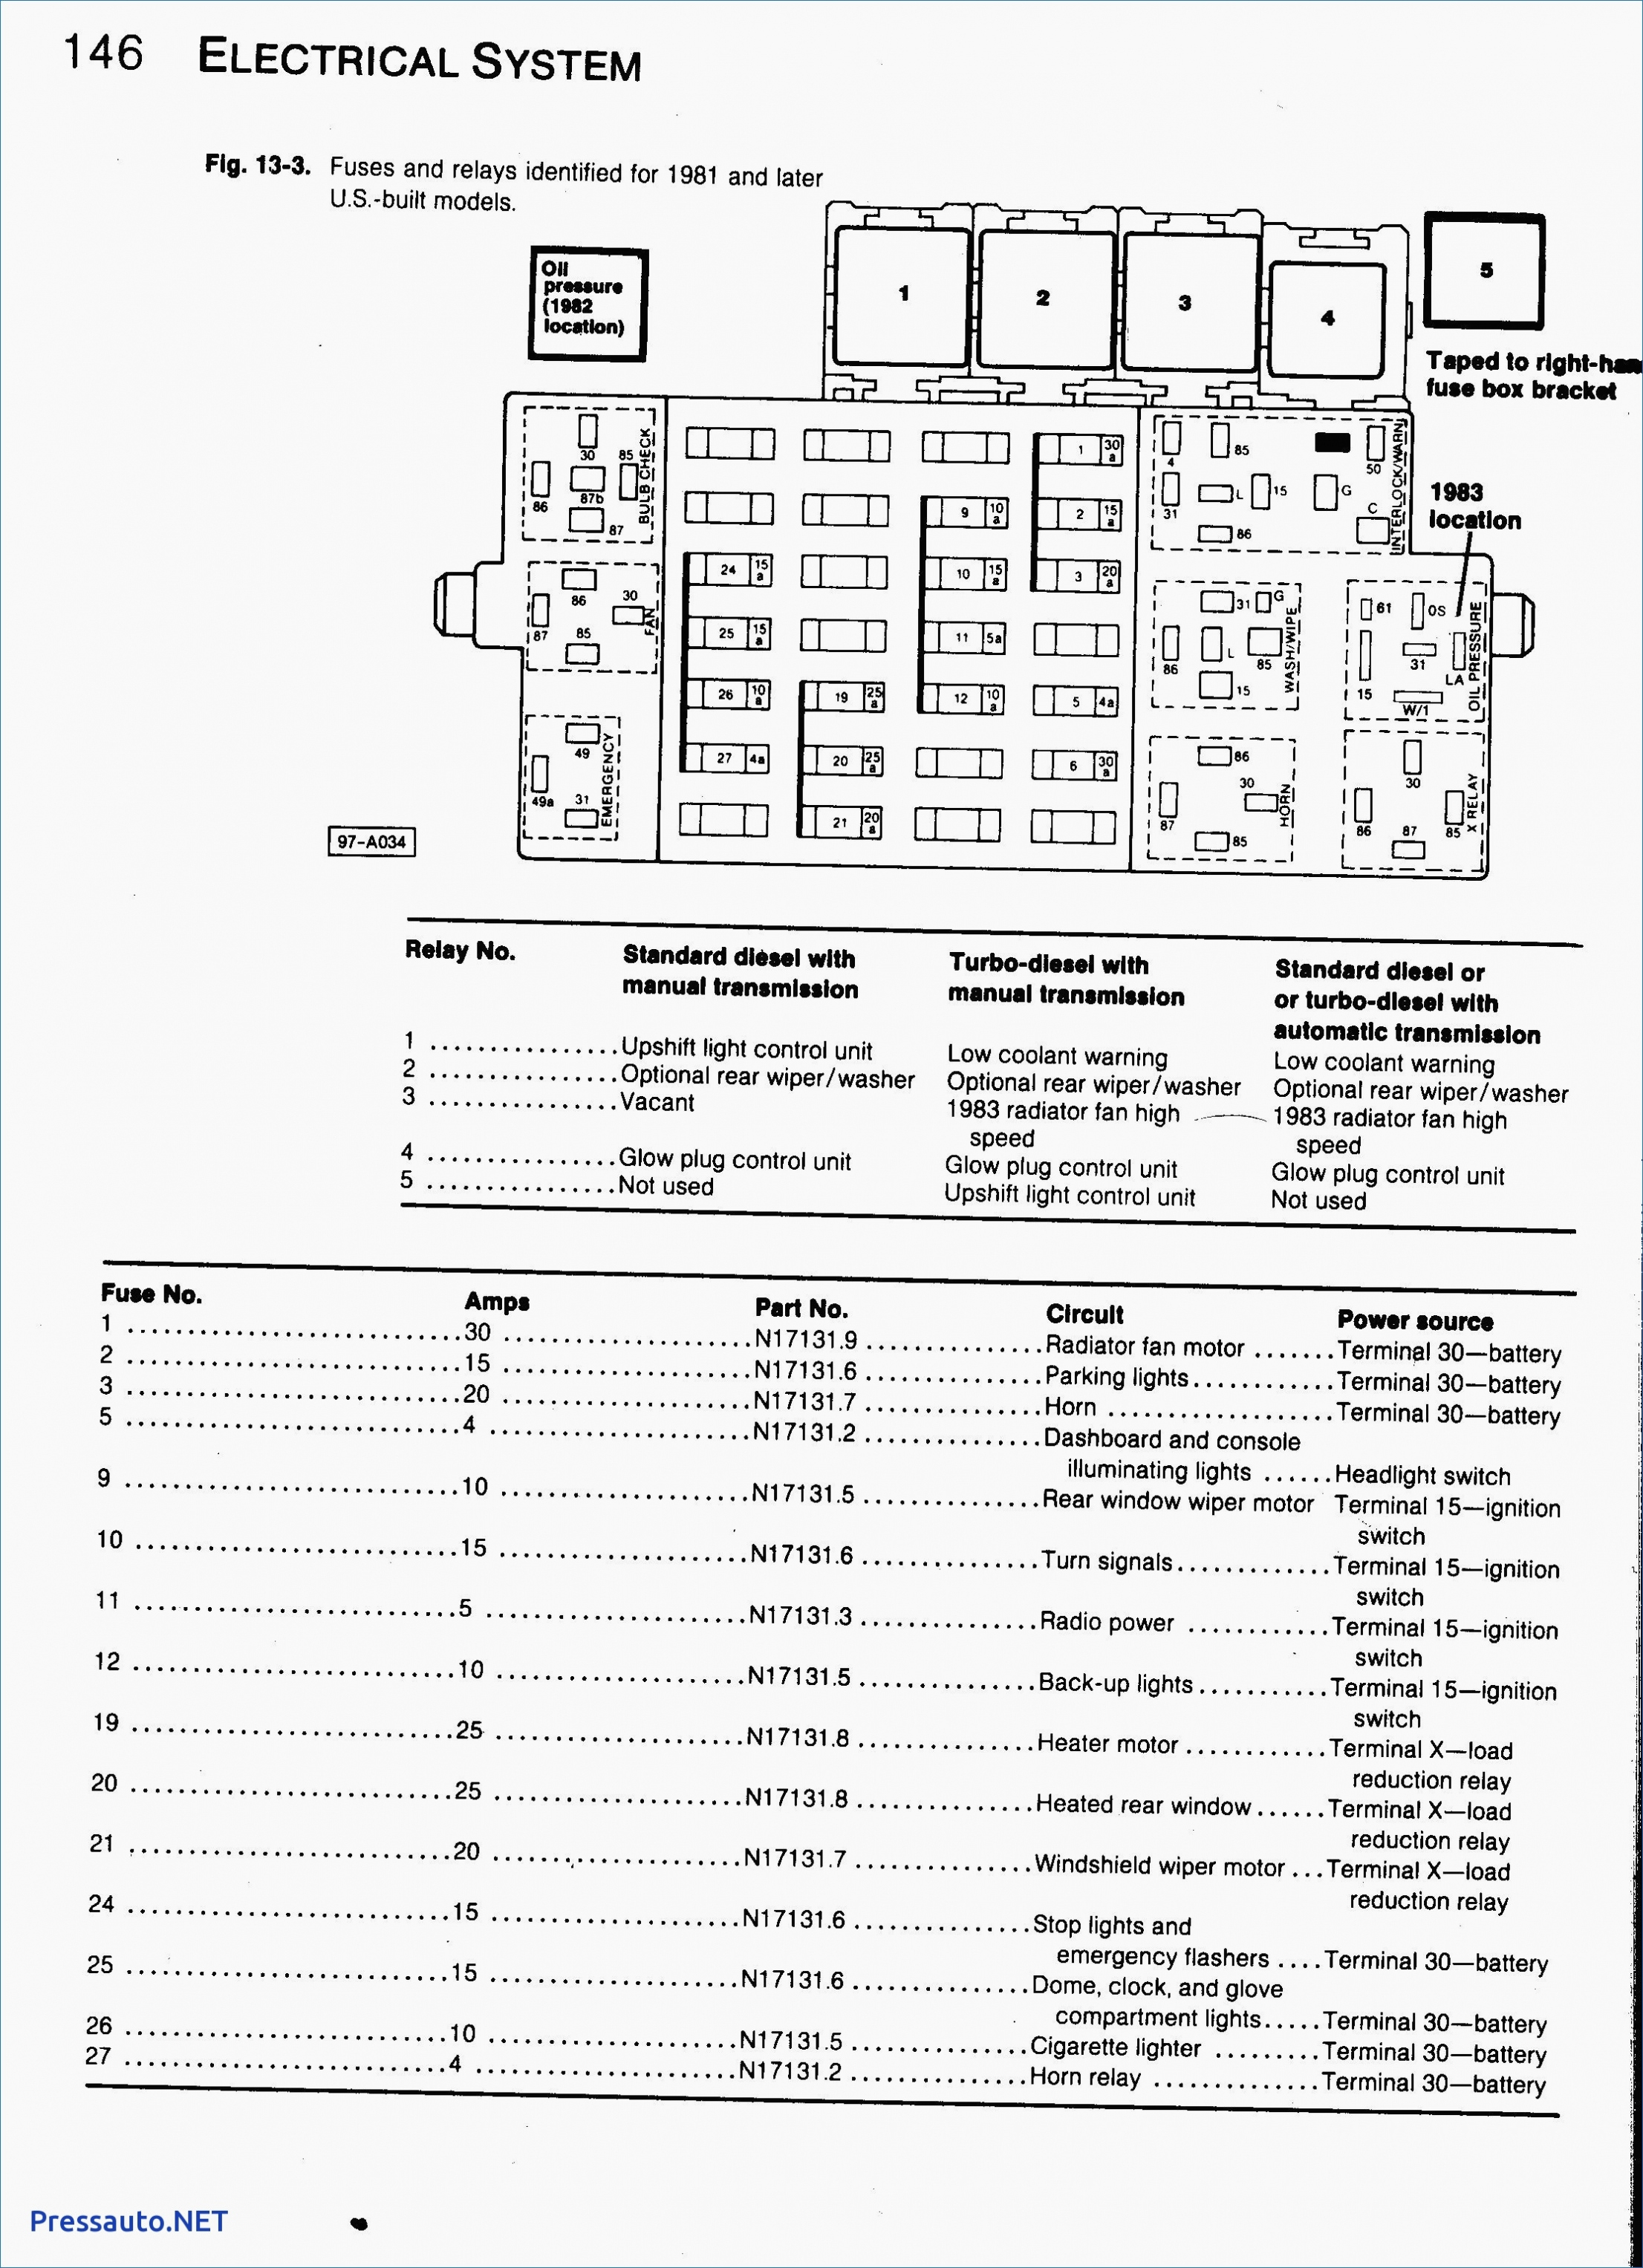 Ve Bug Fuse Box - Wiring Diagram Name - Breaker Box Wiring Diagram